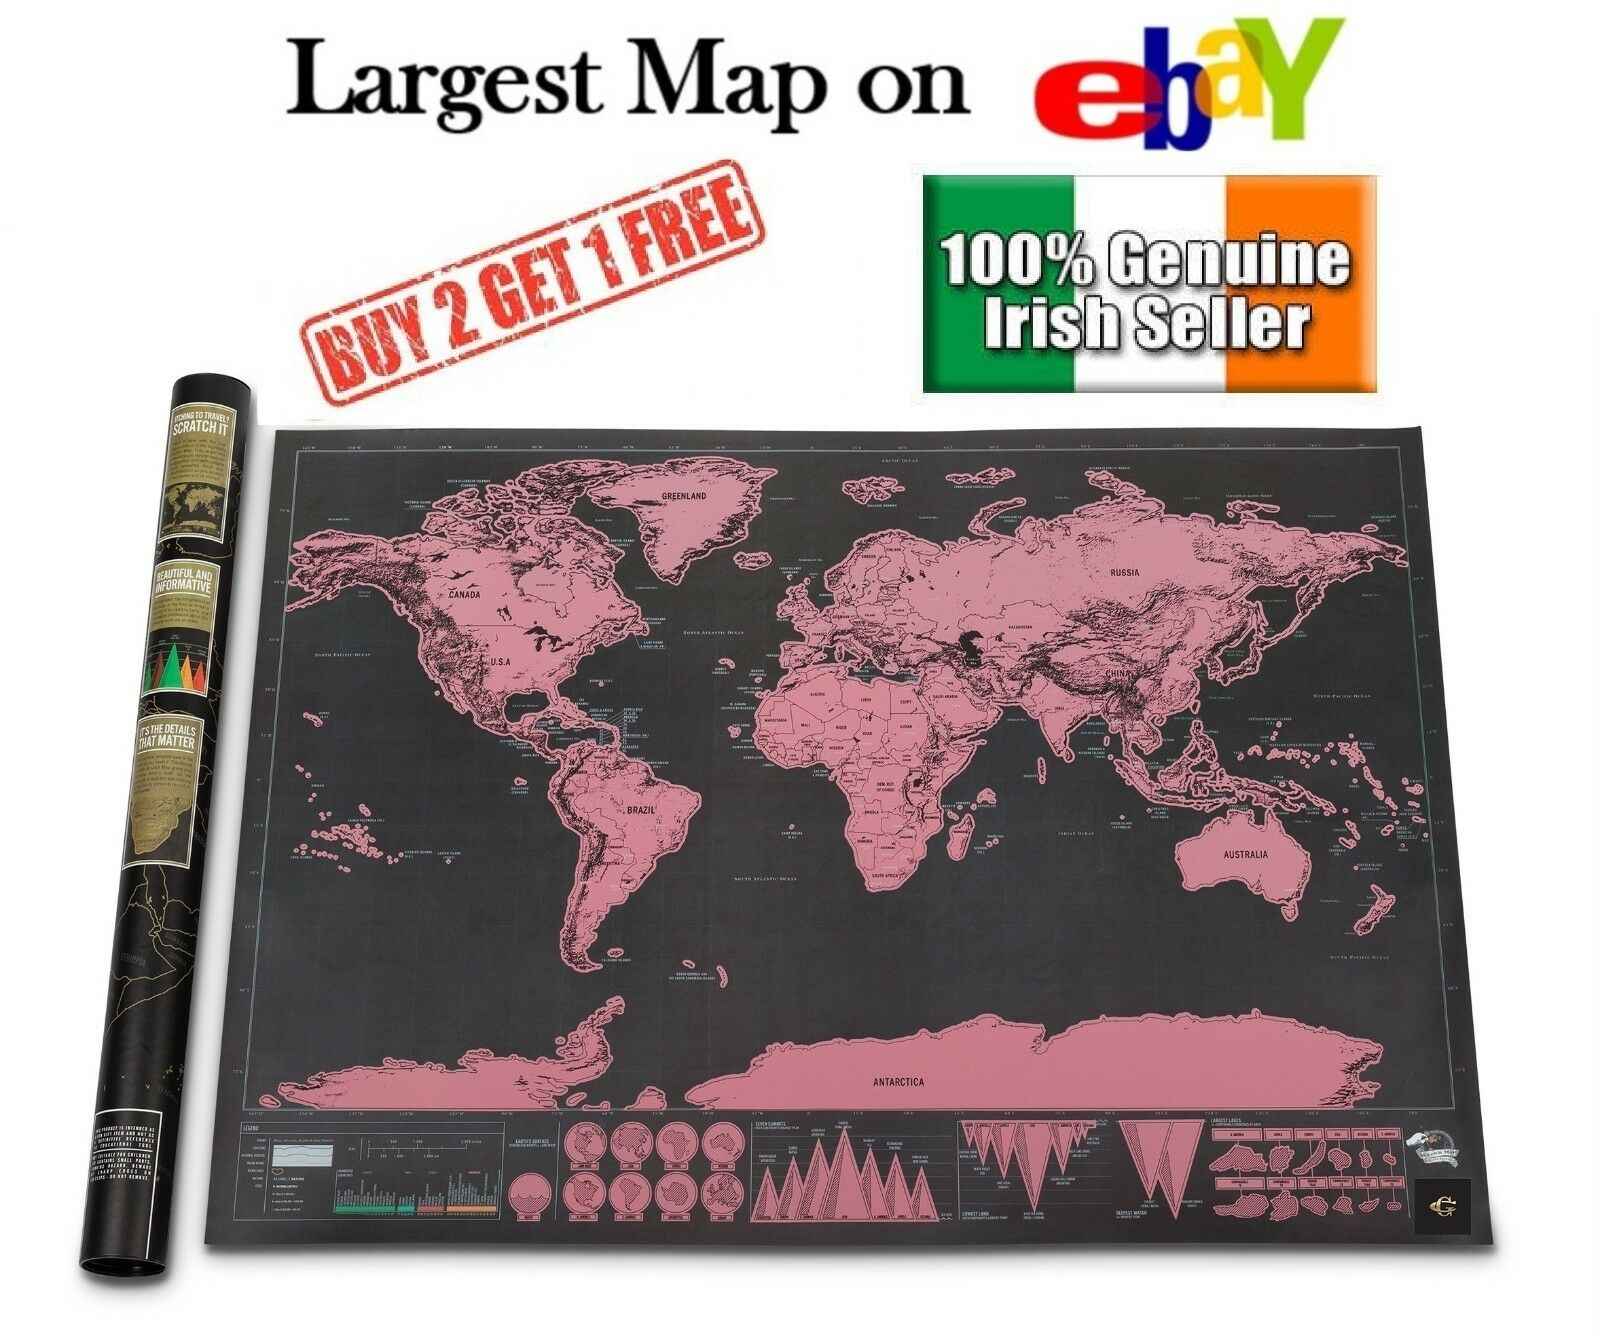 xl large scratch off world map poster personalized travel vacation personal gift cad. Black Bedroom Furniture Sets. Home Design Ideas